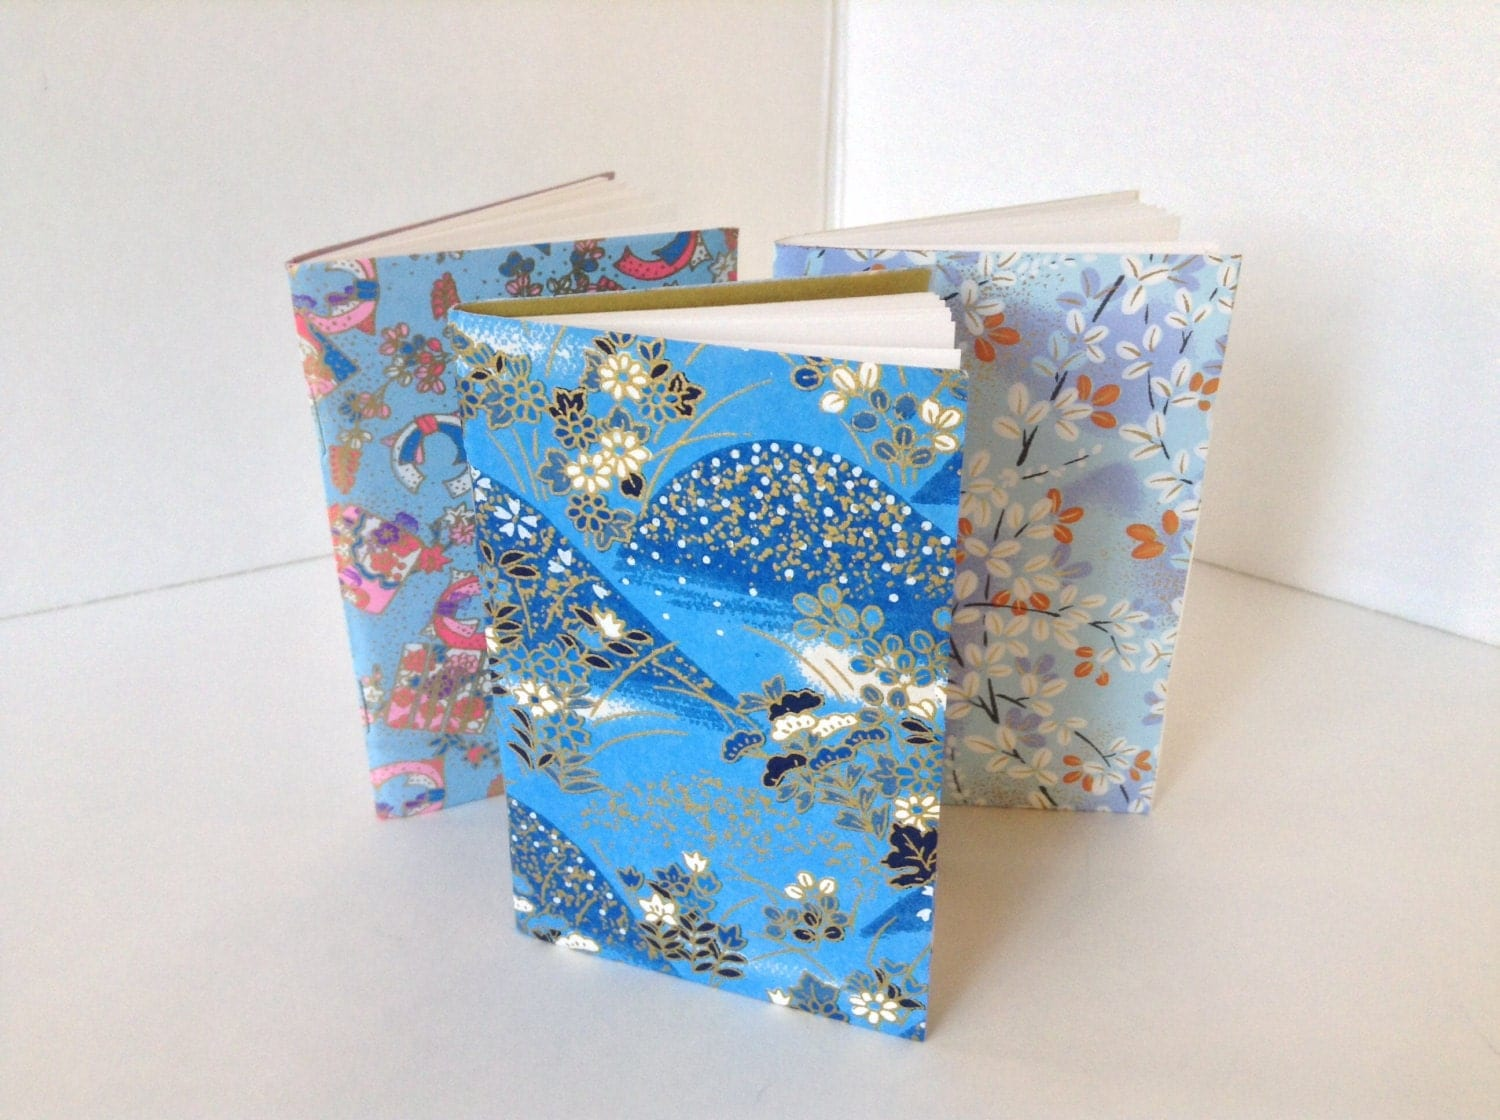 small notebooks origami paper notebook valentines gift